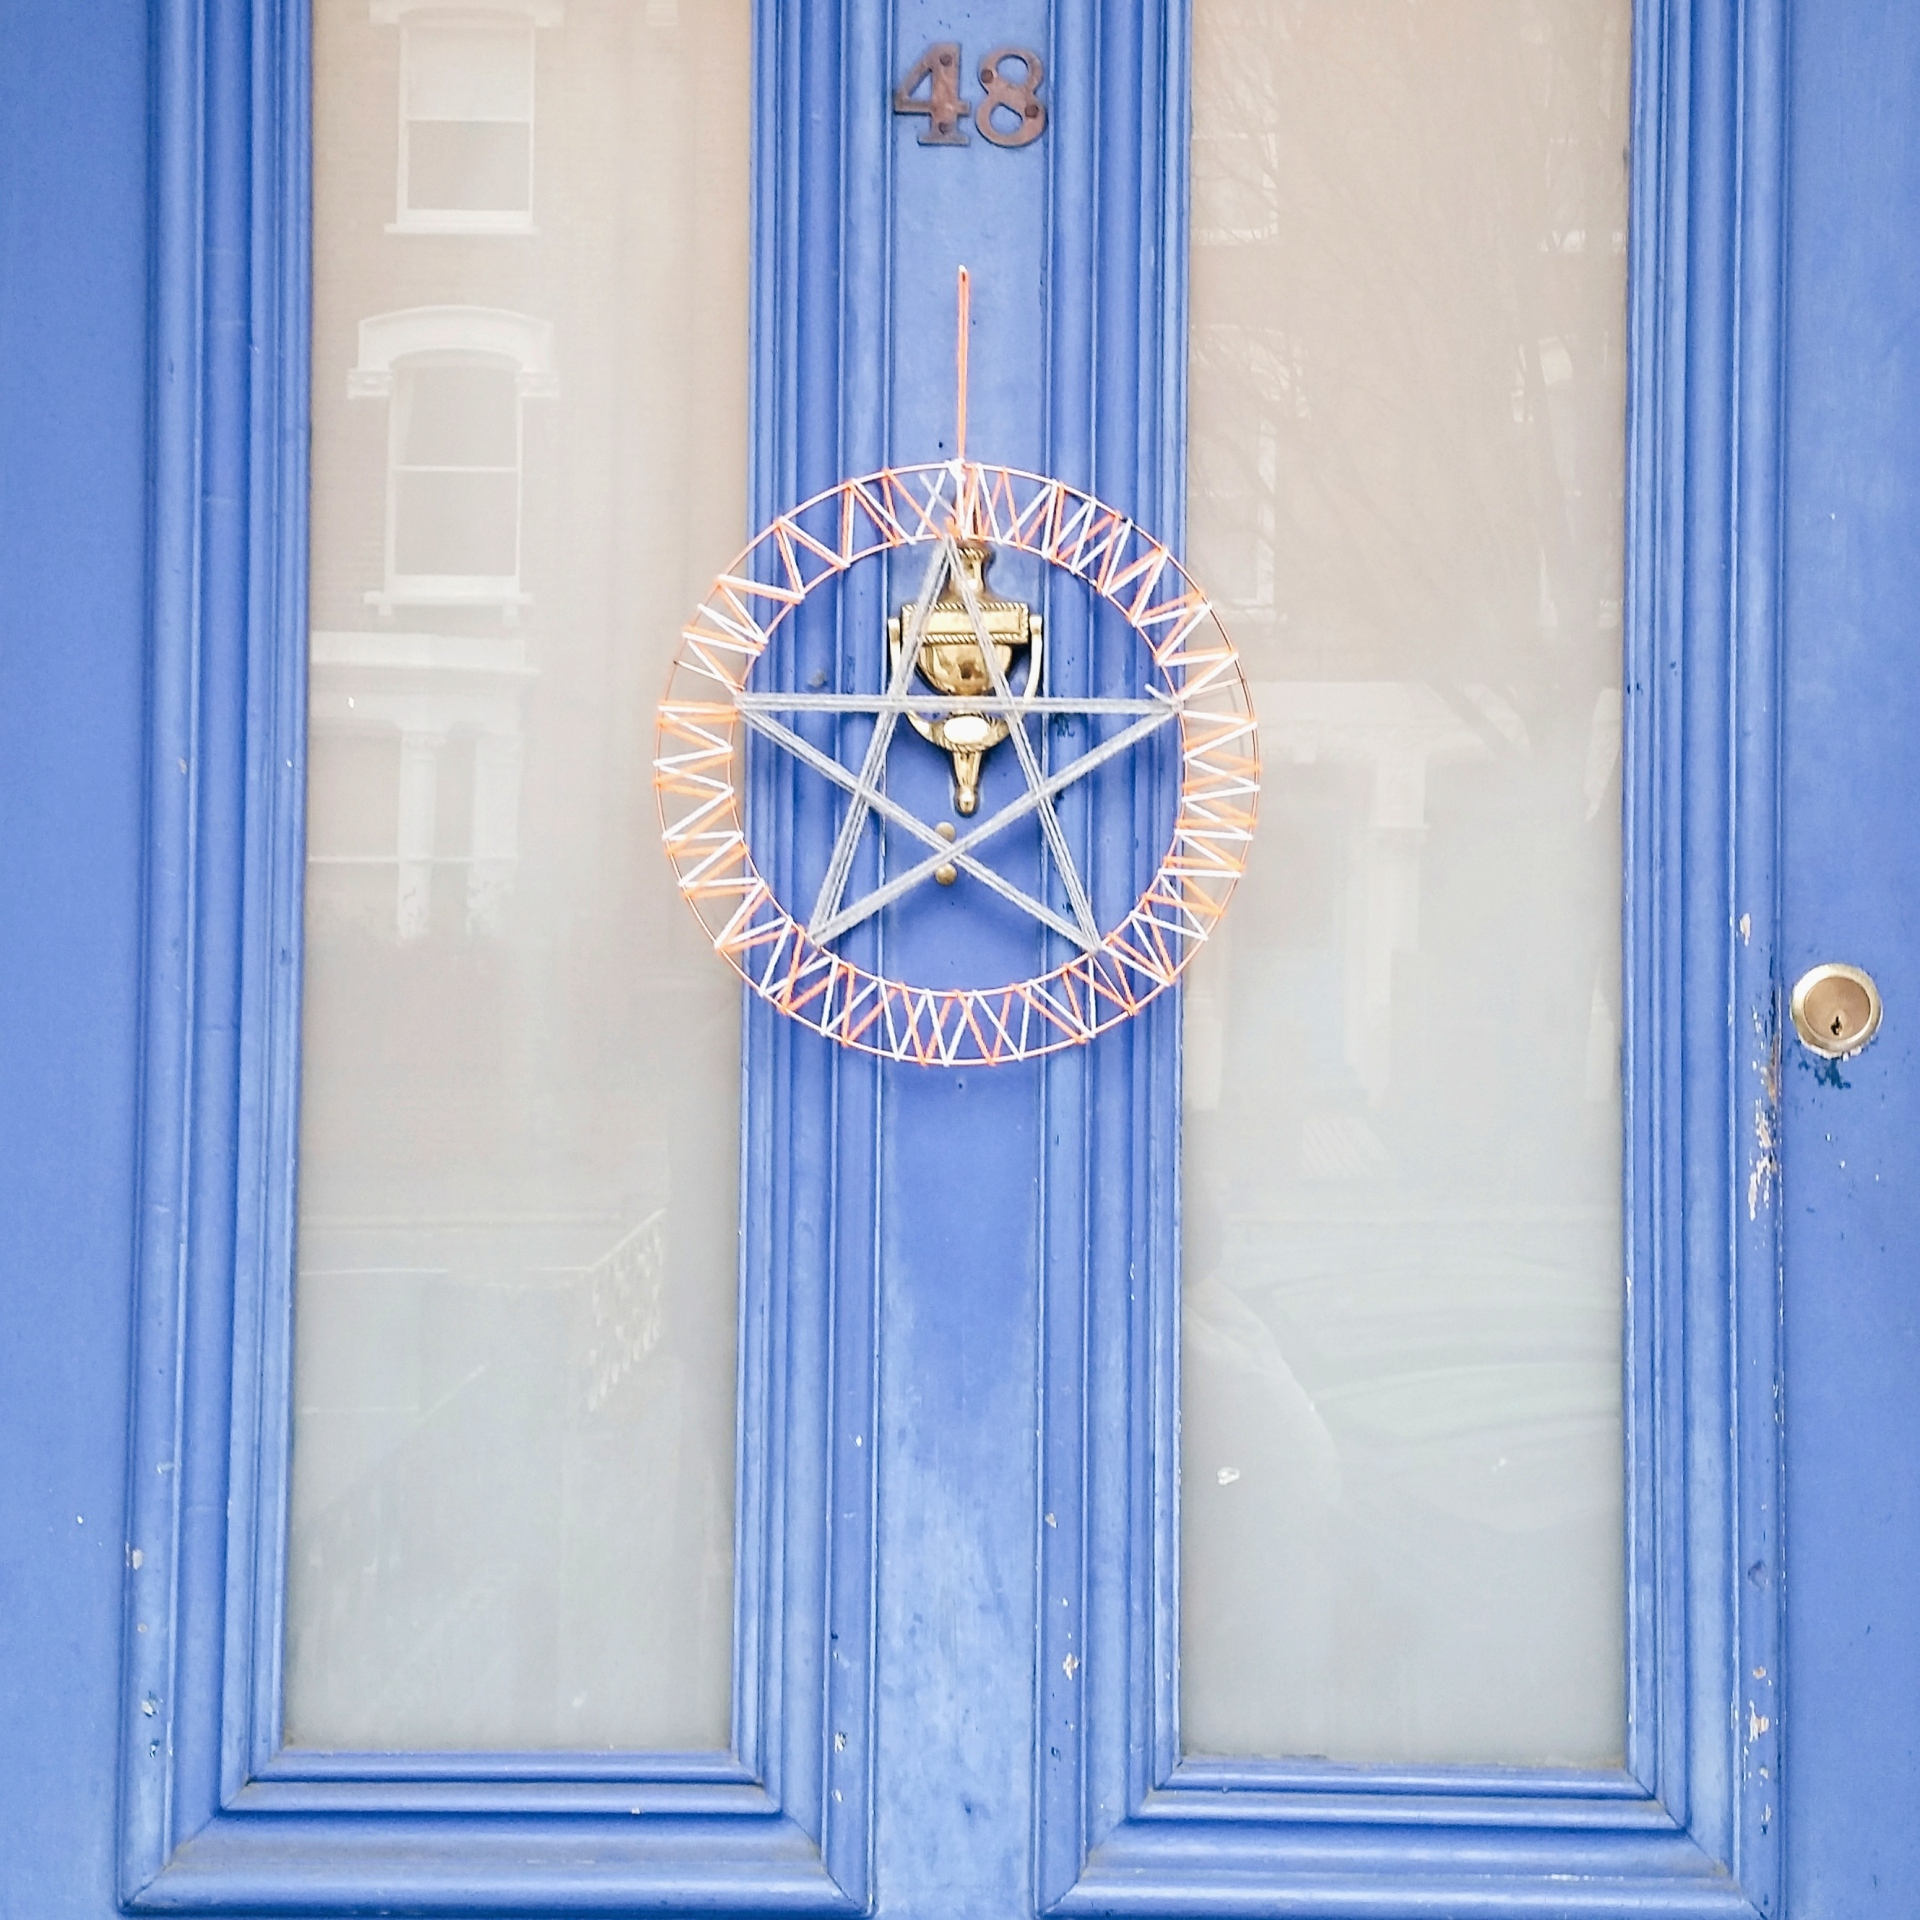 Star wreath on door